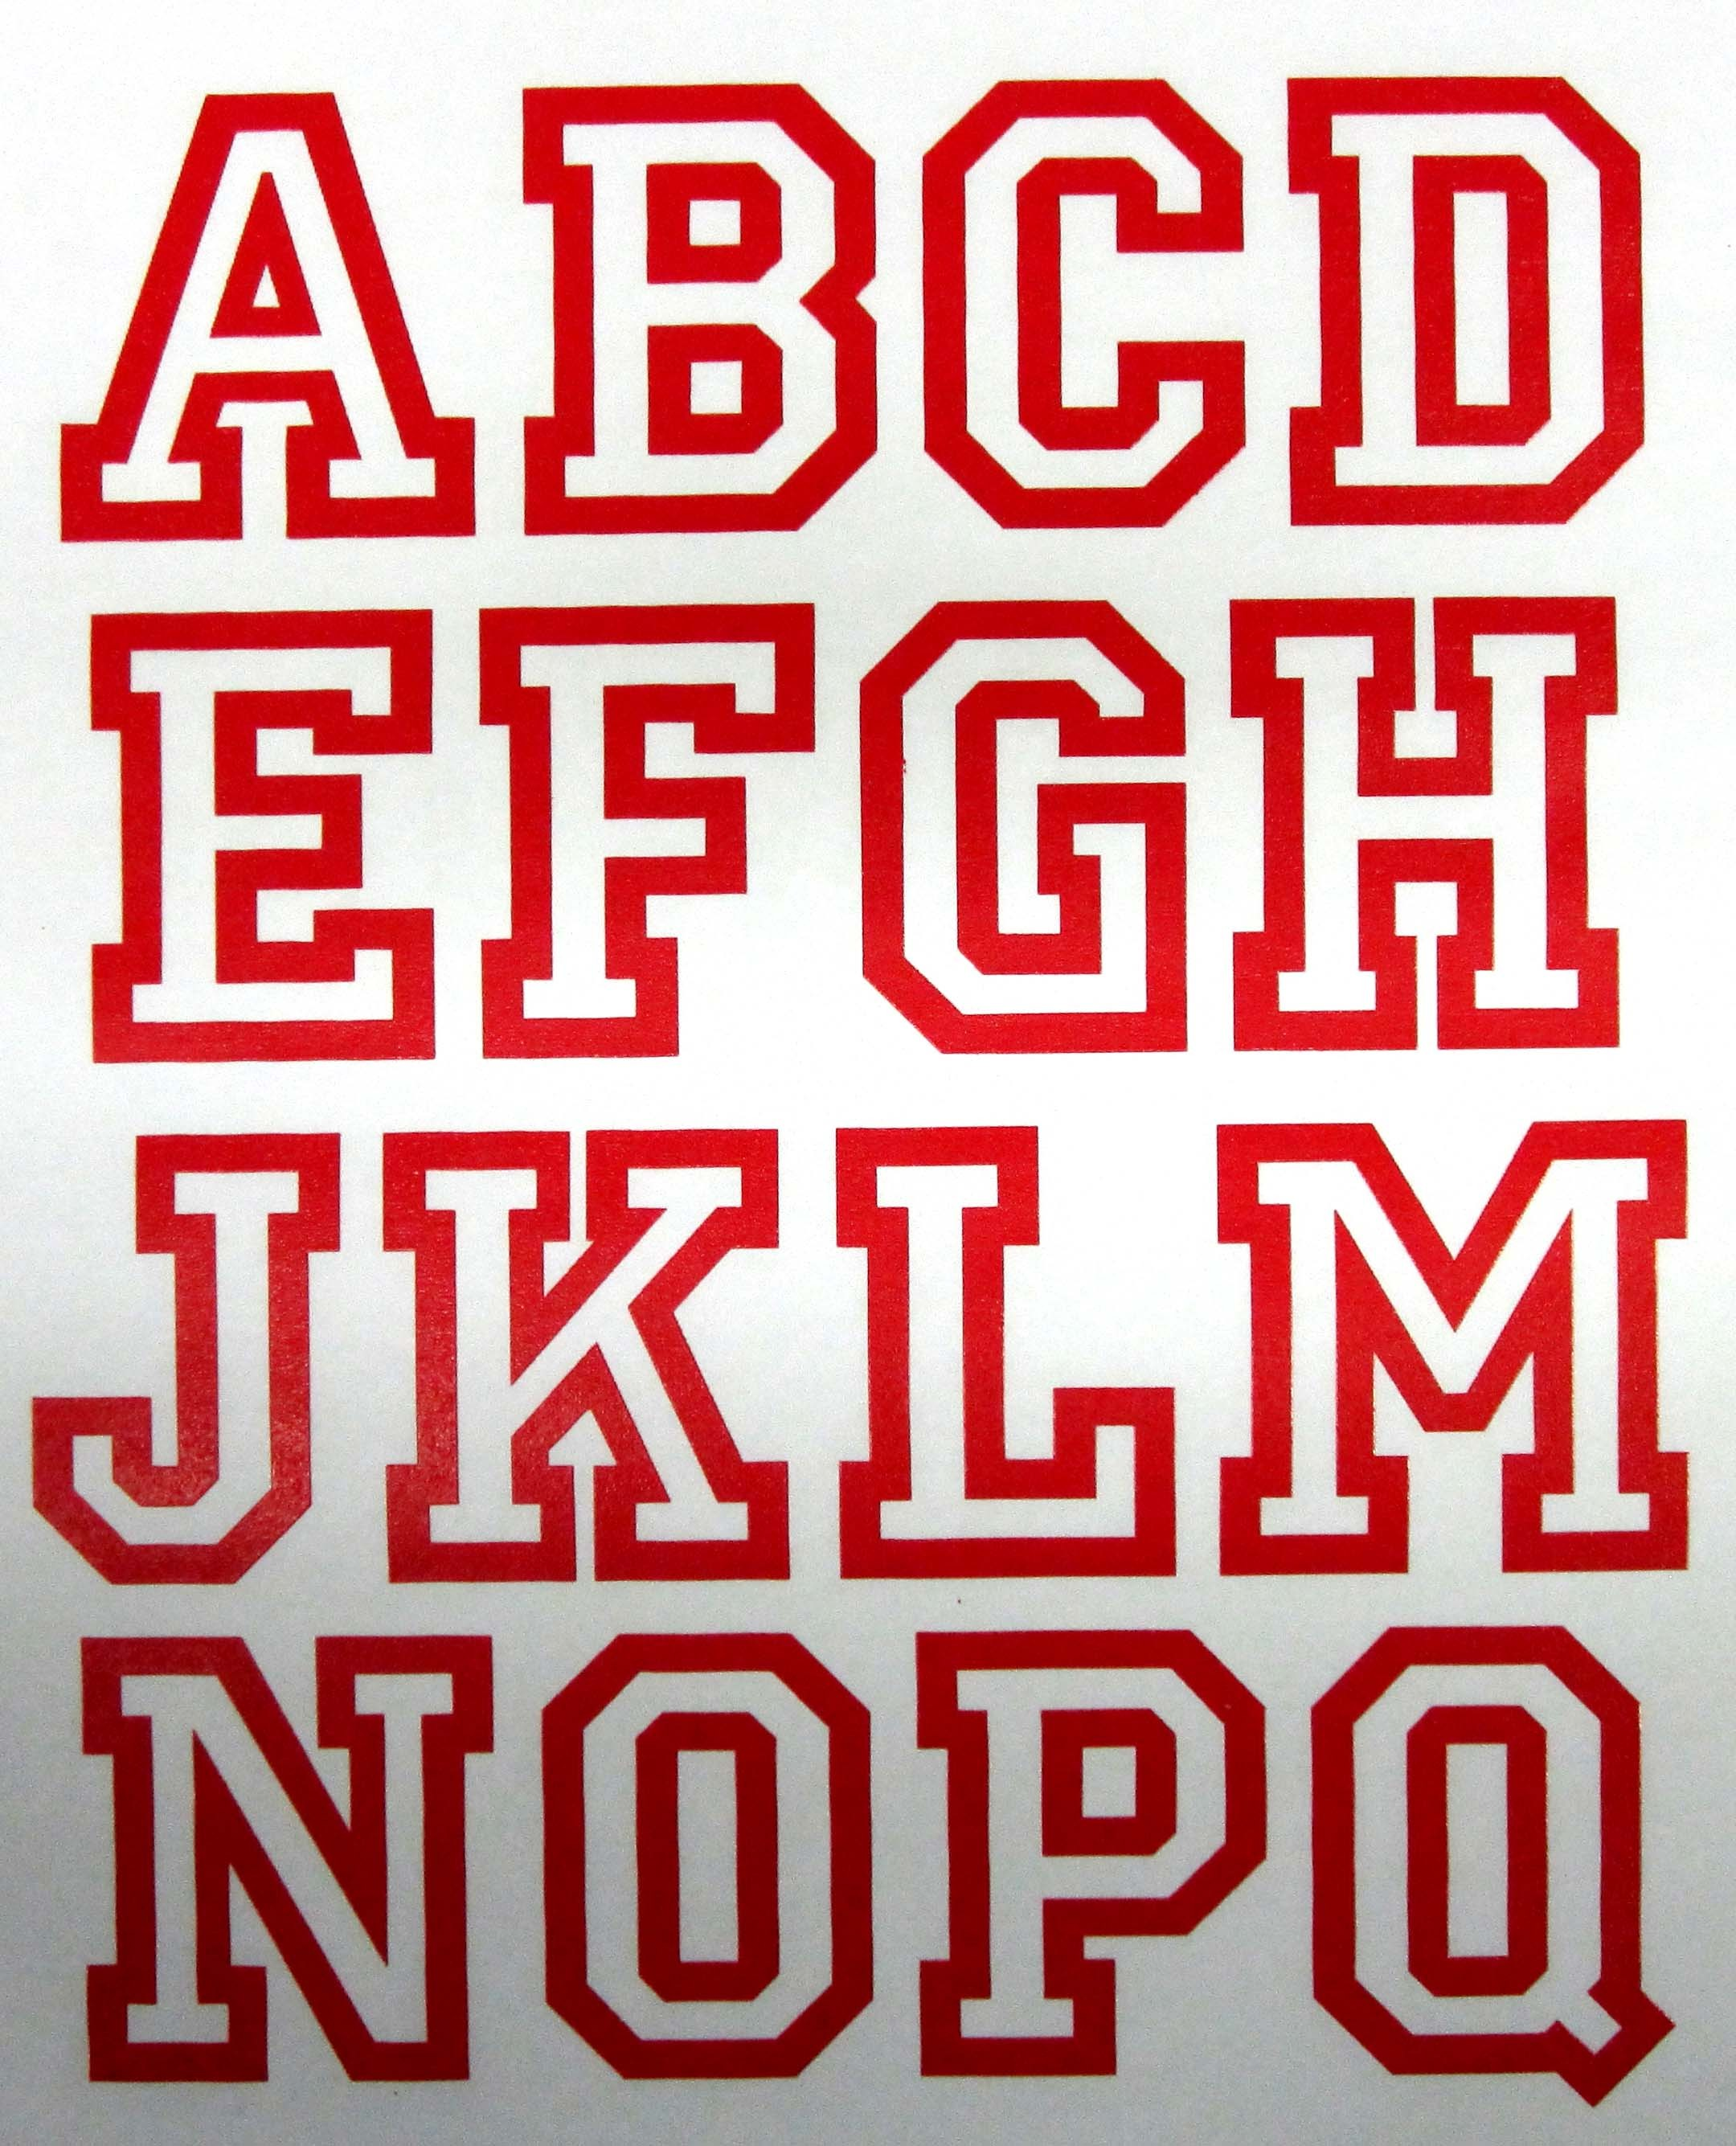 14 Football Alphabet Font Images - Football Letters Font